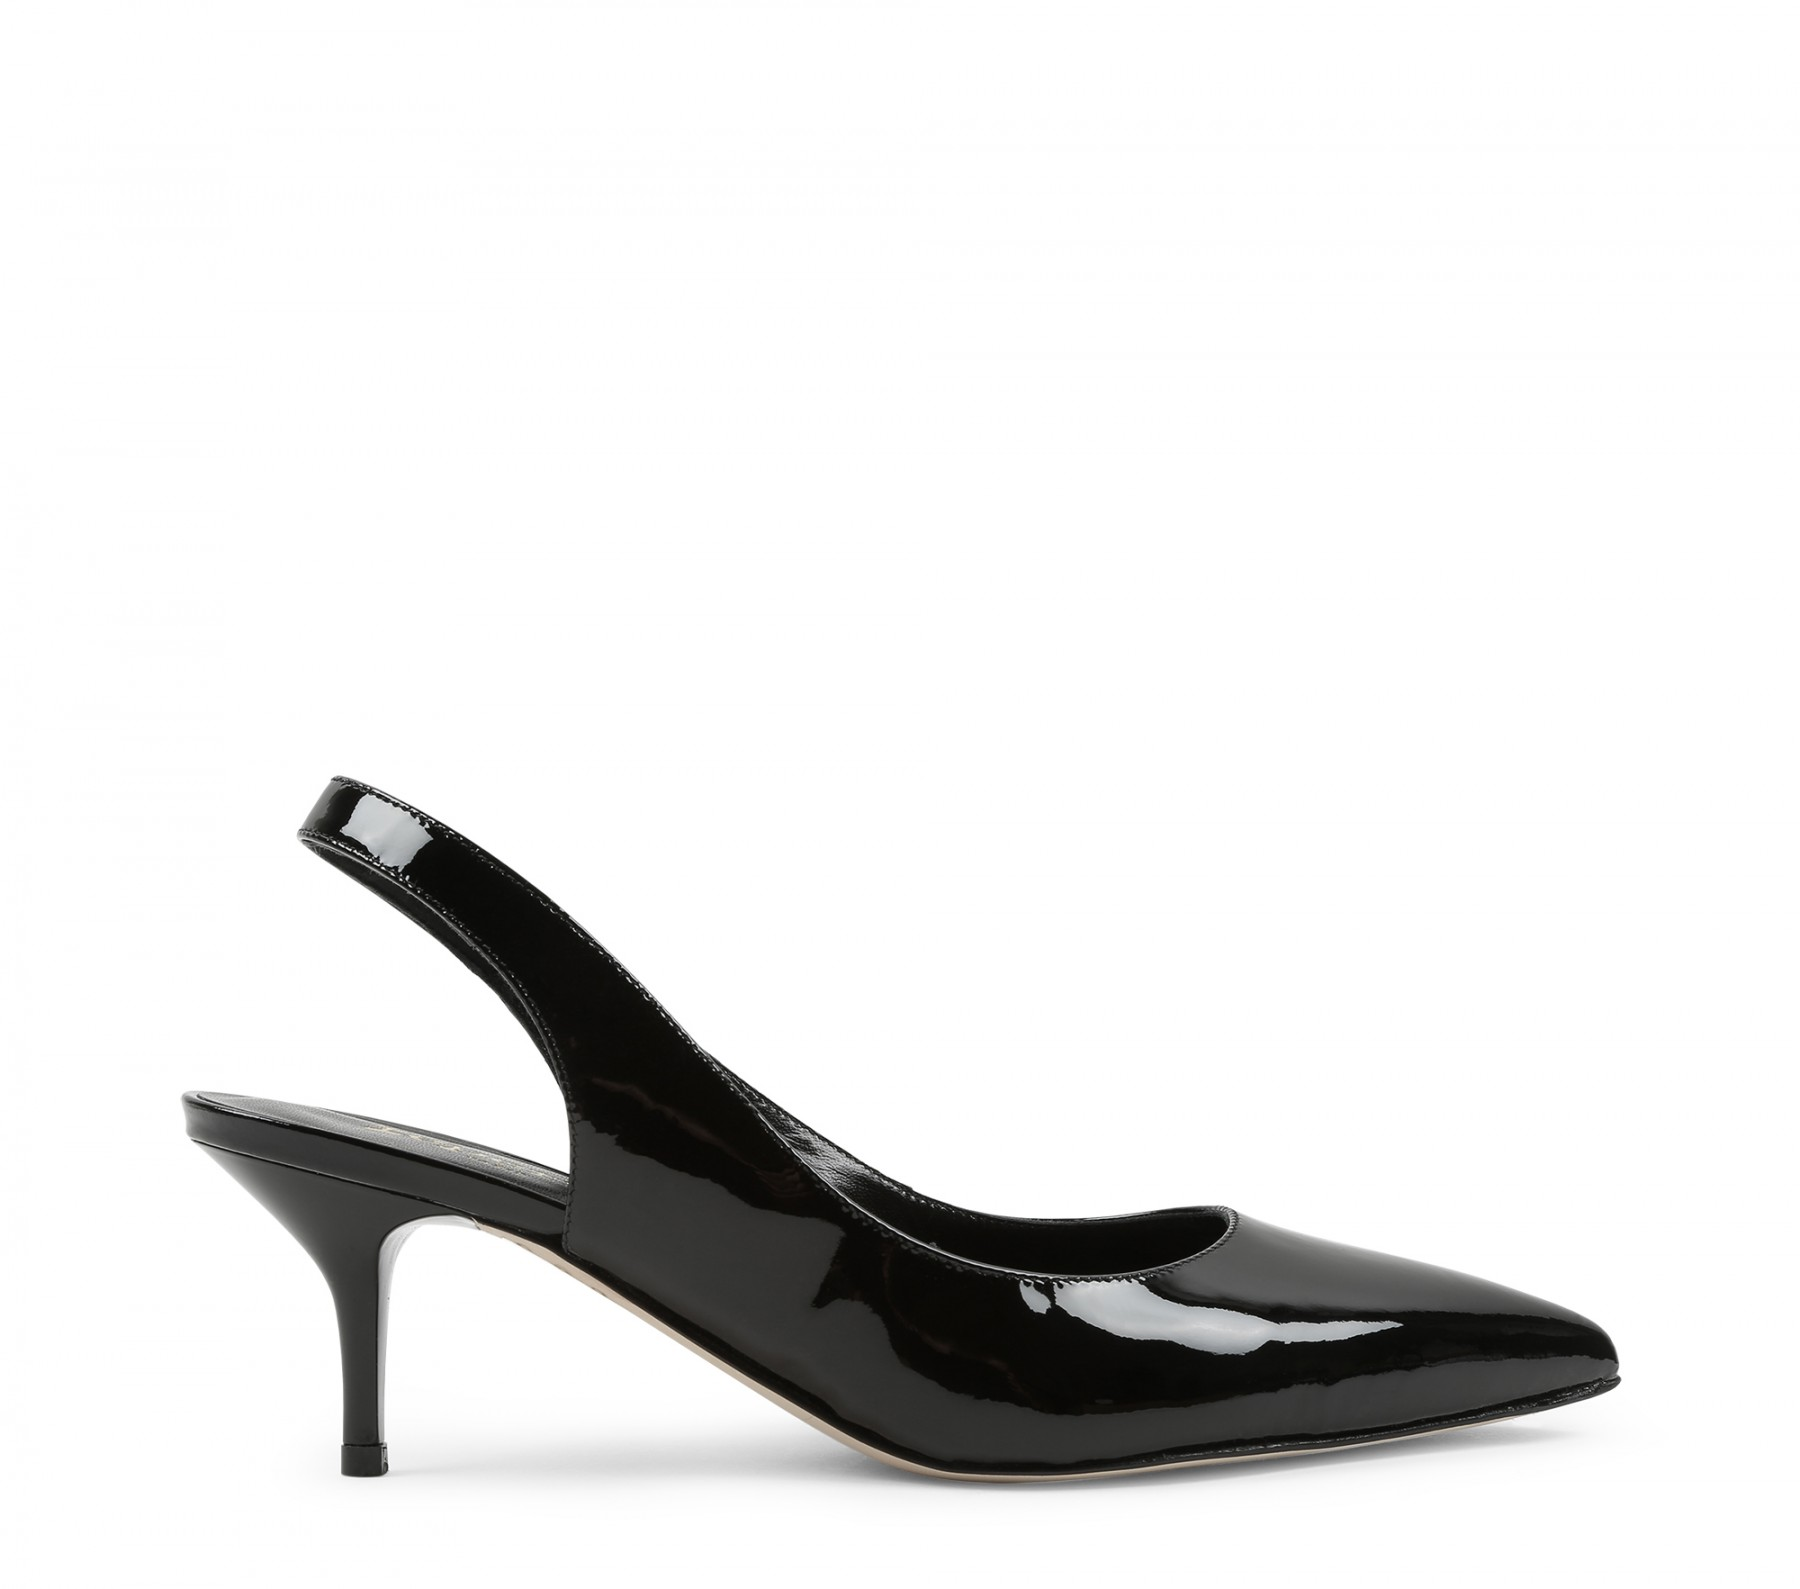 Repetto Ilda pumps llwAa